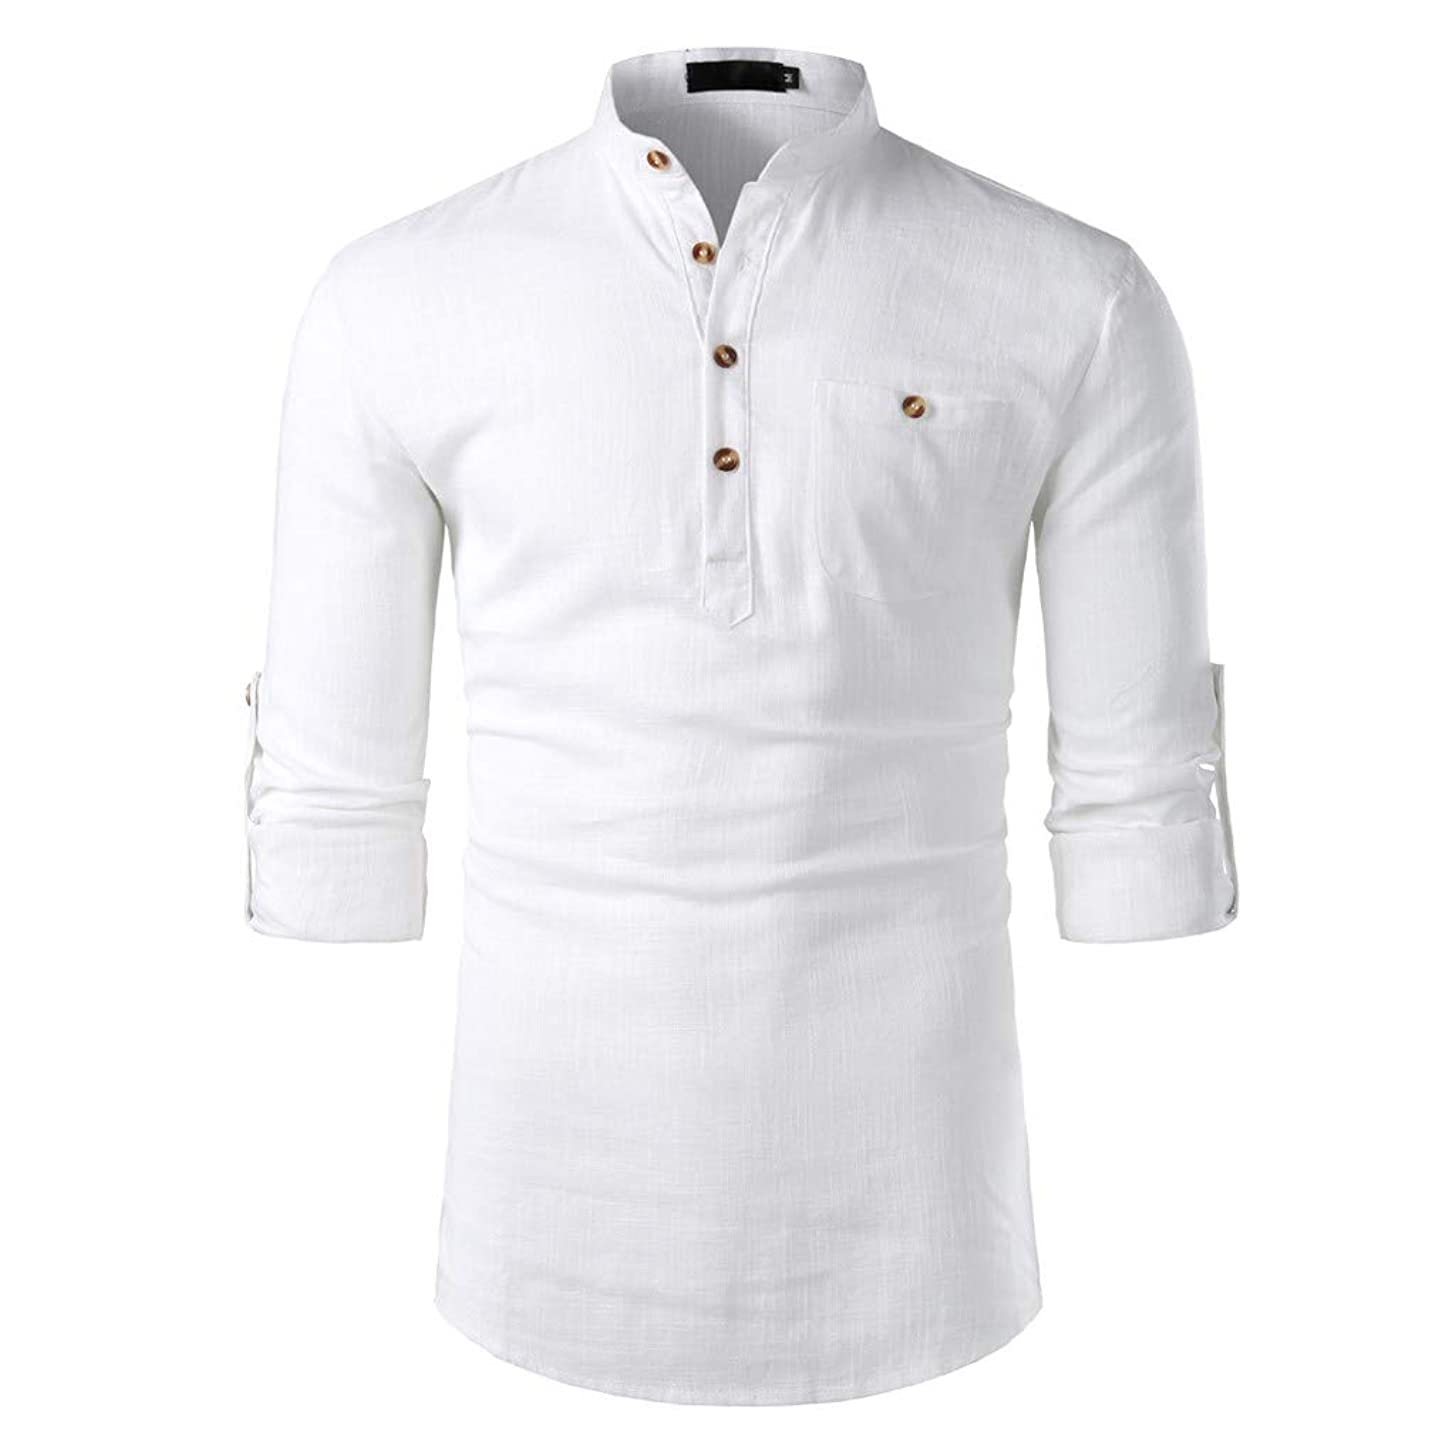 LUCAMORE Men Casual Solid Linen Long Sleeve T-Shirt Fashion V-Neck Button Up Shirts Slim Fit Blouse Tops